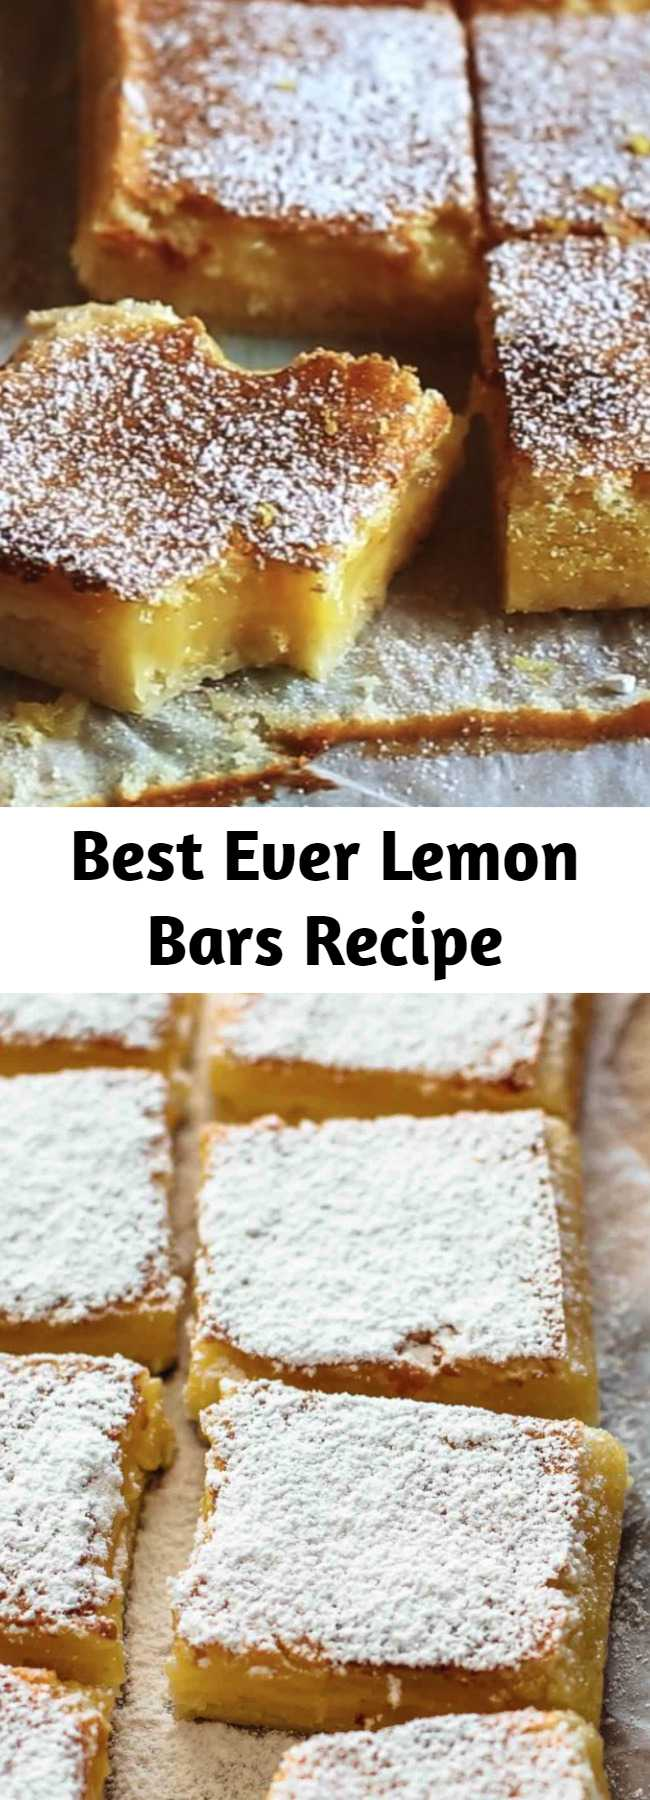 Best Ever Lemon Bars Recipe - These Lemon Bars are sour and sweet and very easy to make. Buttery shortbread crust meets tangy lemon curd filling. You won't be able to stop eating these. #lemonbars #lemon #sweets #desserts